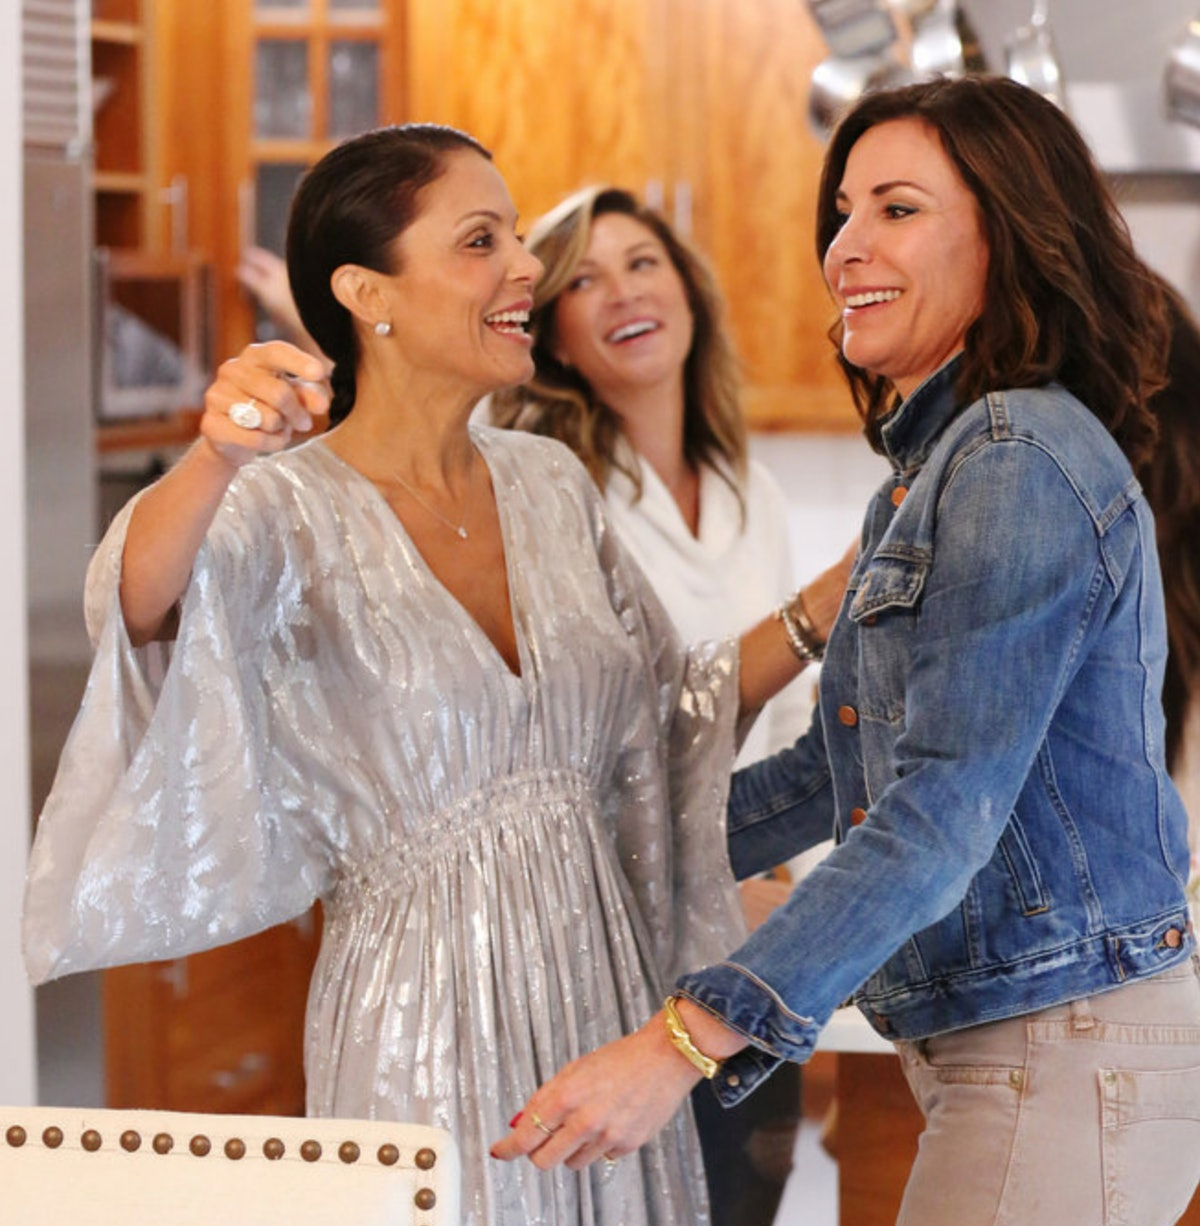 The 'RHONY' Season 11 Midseason Trailer Shows The Tension Between Bethenny & Luann Boiling Over — VIDEO